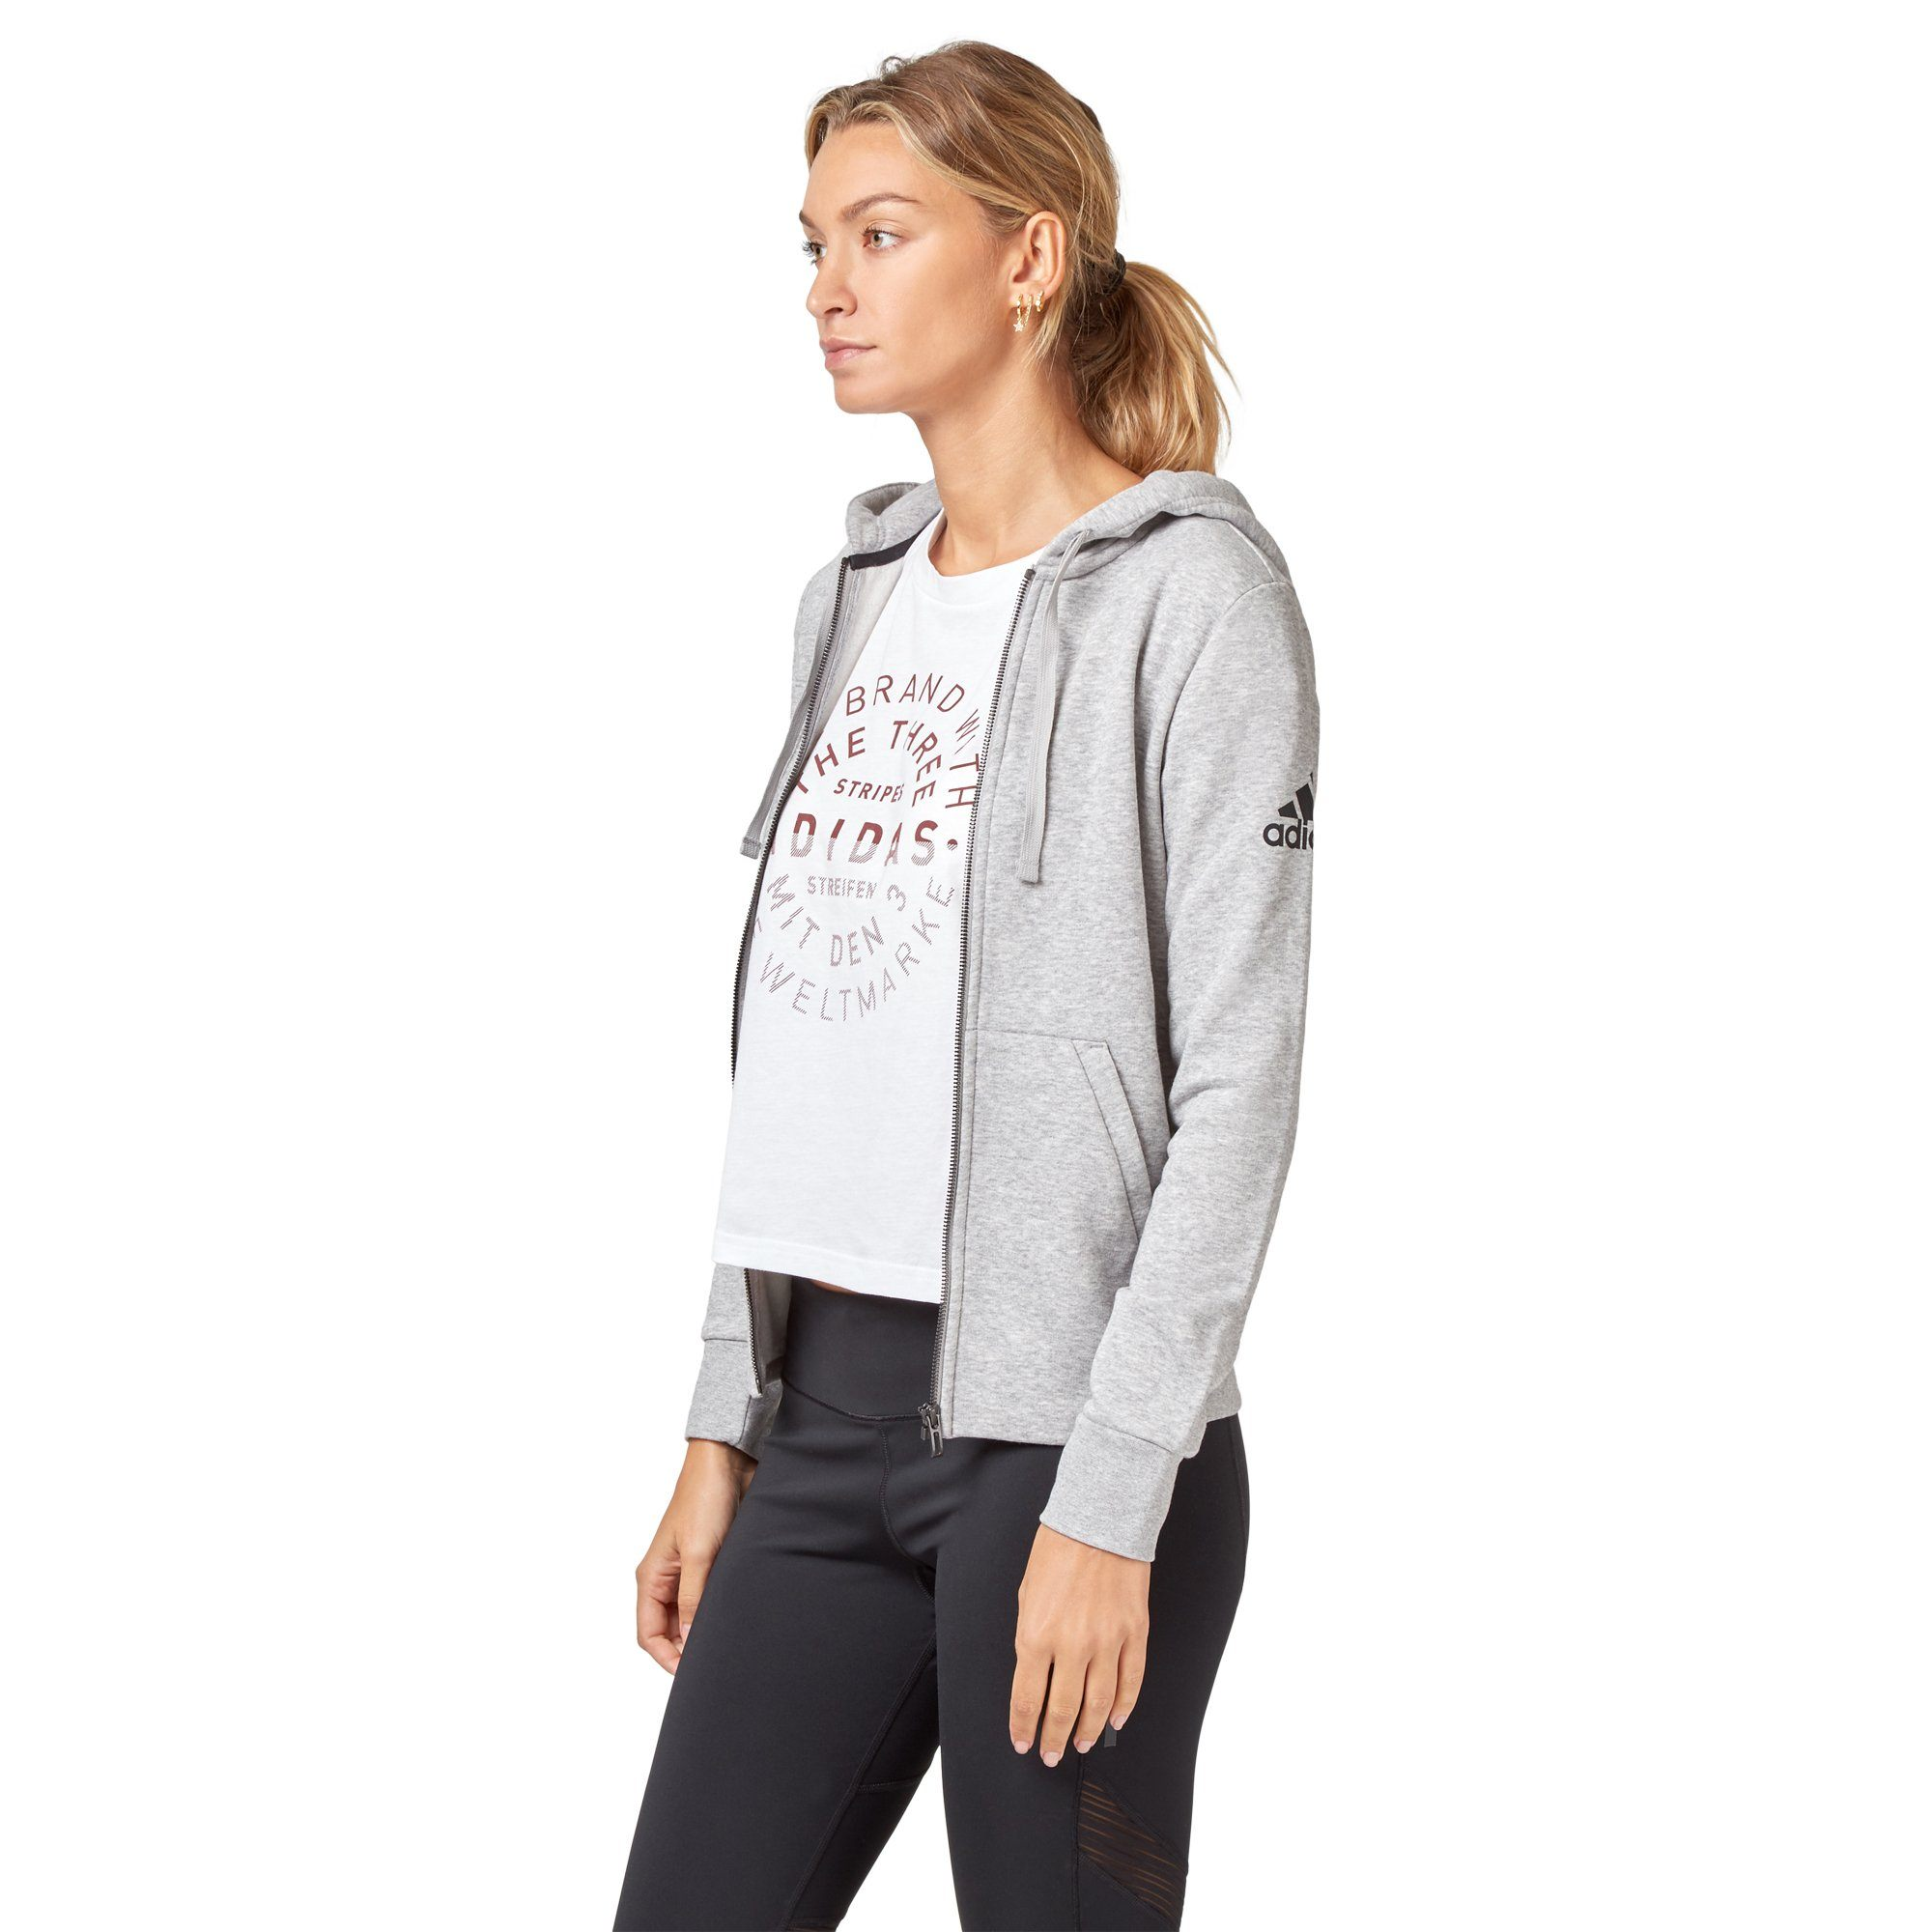 Adidas Women's Essentials Solid Hoodie - Mid grey heather SportsPower Geelong  (2012421488699)